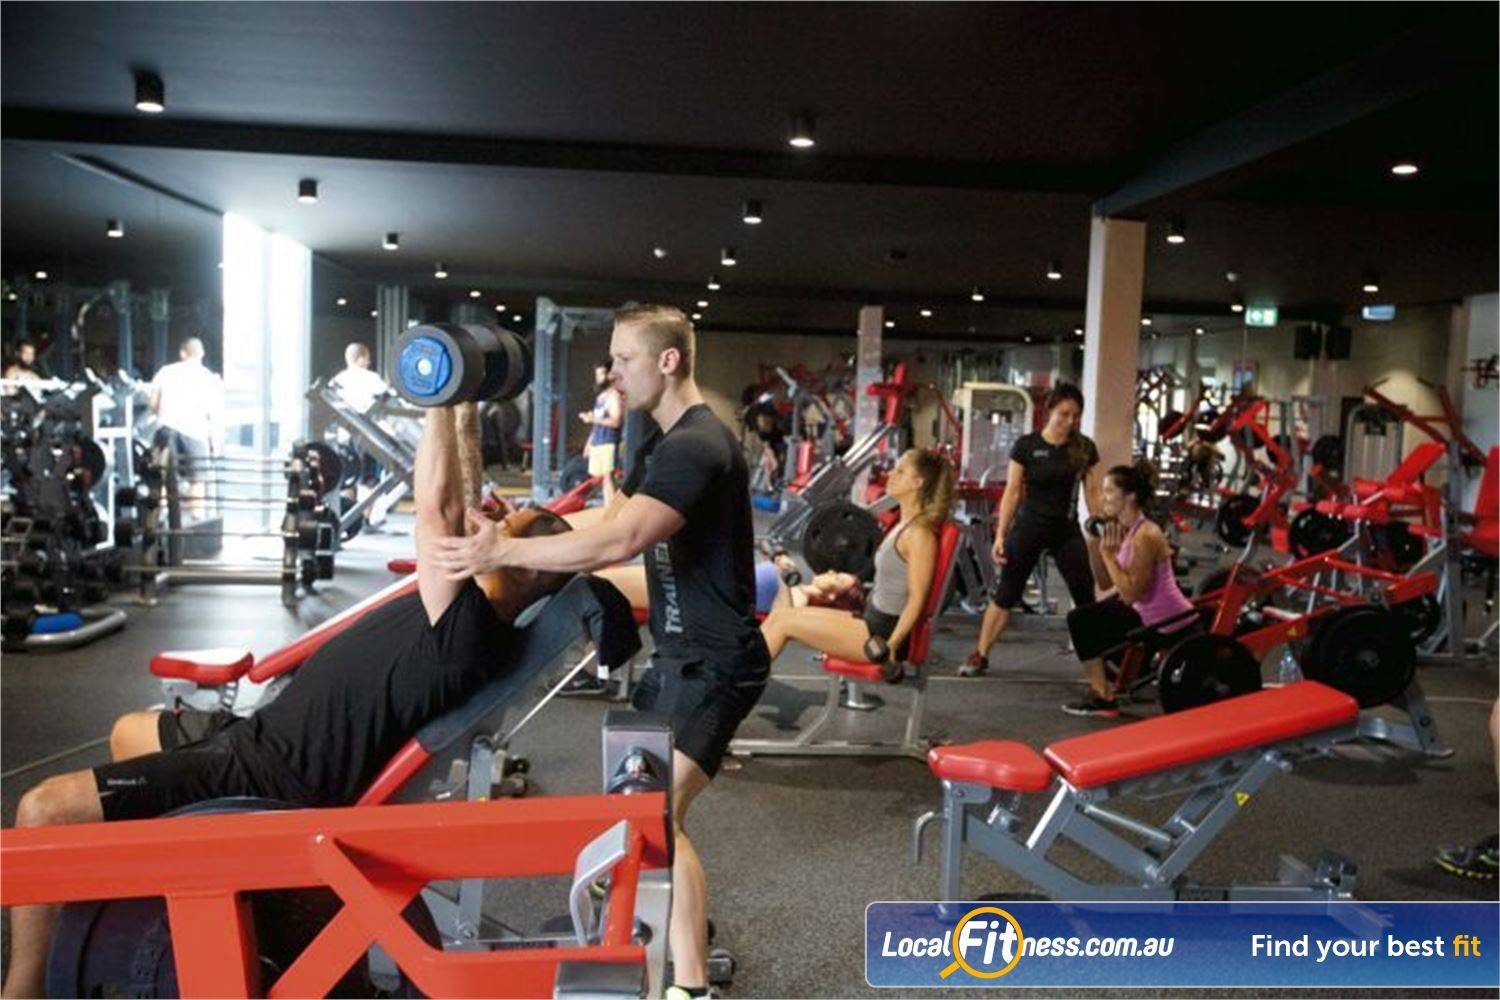 Goodlife Health Clubs Beenleigh Our Beenleigh personal training team can guide your strength training.